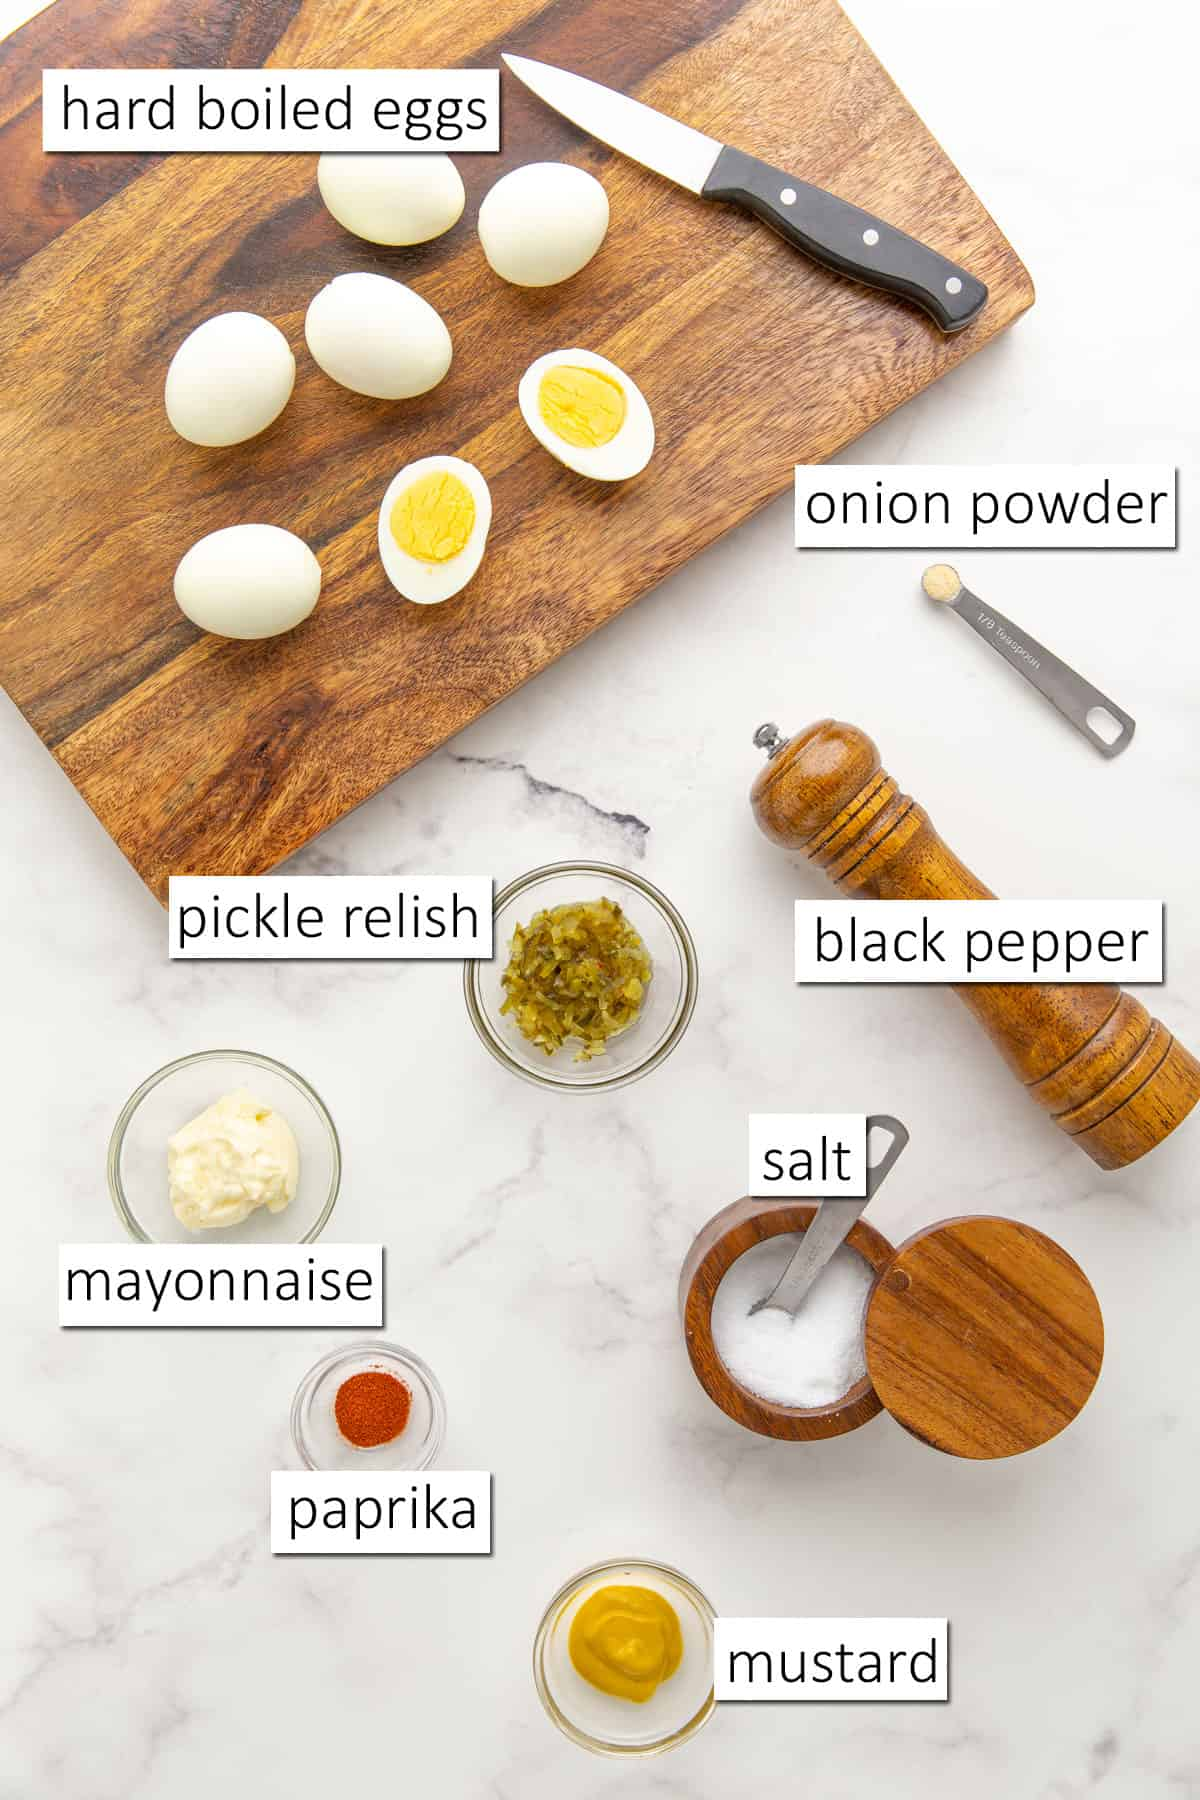 Overhead view of ingredients needed to make southern deviled eggs.